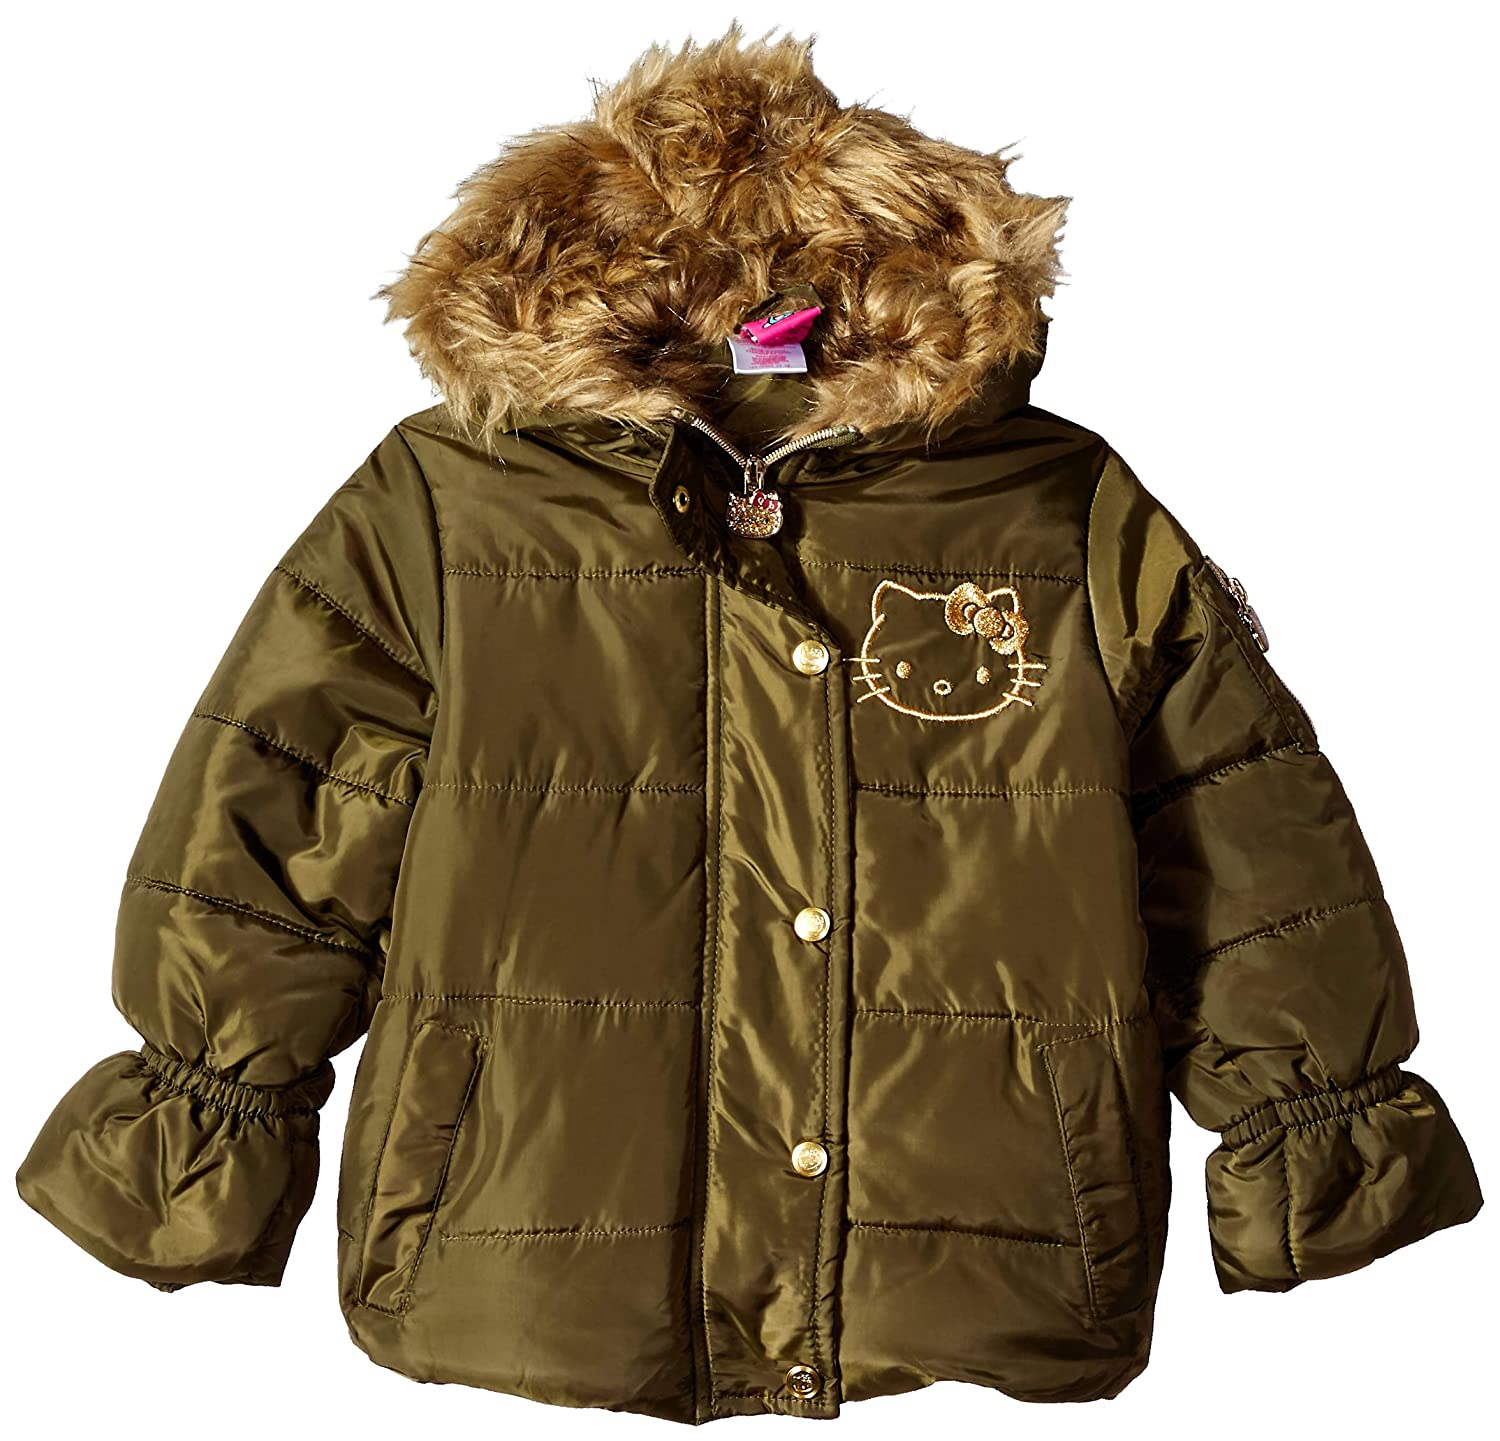 5b0bd3b76 Hello Kitty Girl's All Over Printed Puffer Jacket with Fur Trim Hood Down  Coat: Amazon.co.uk: Clothing